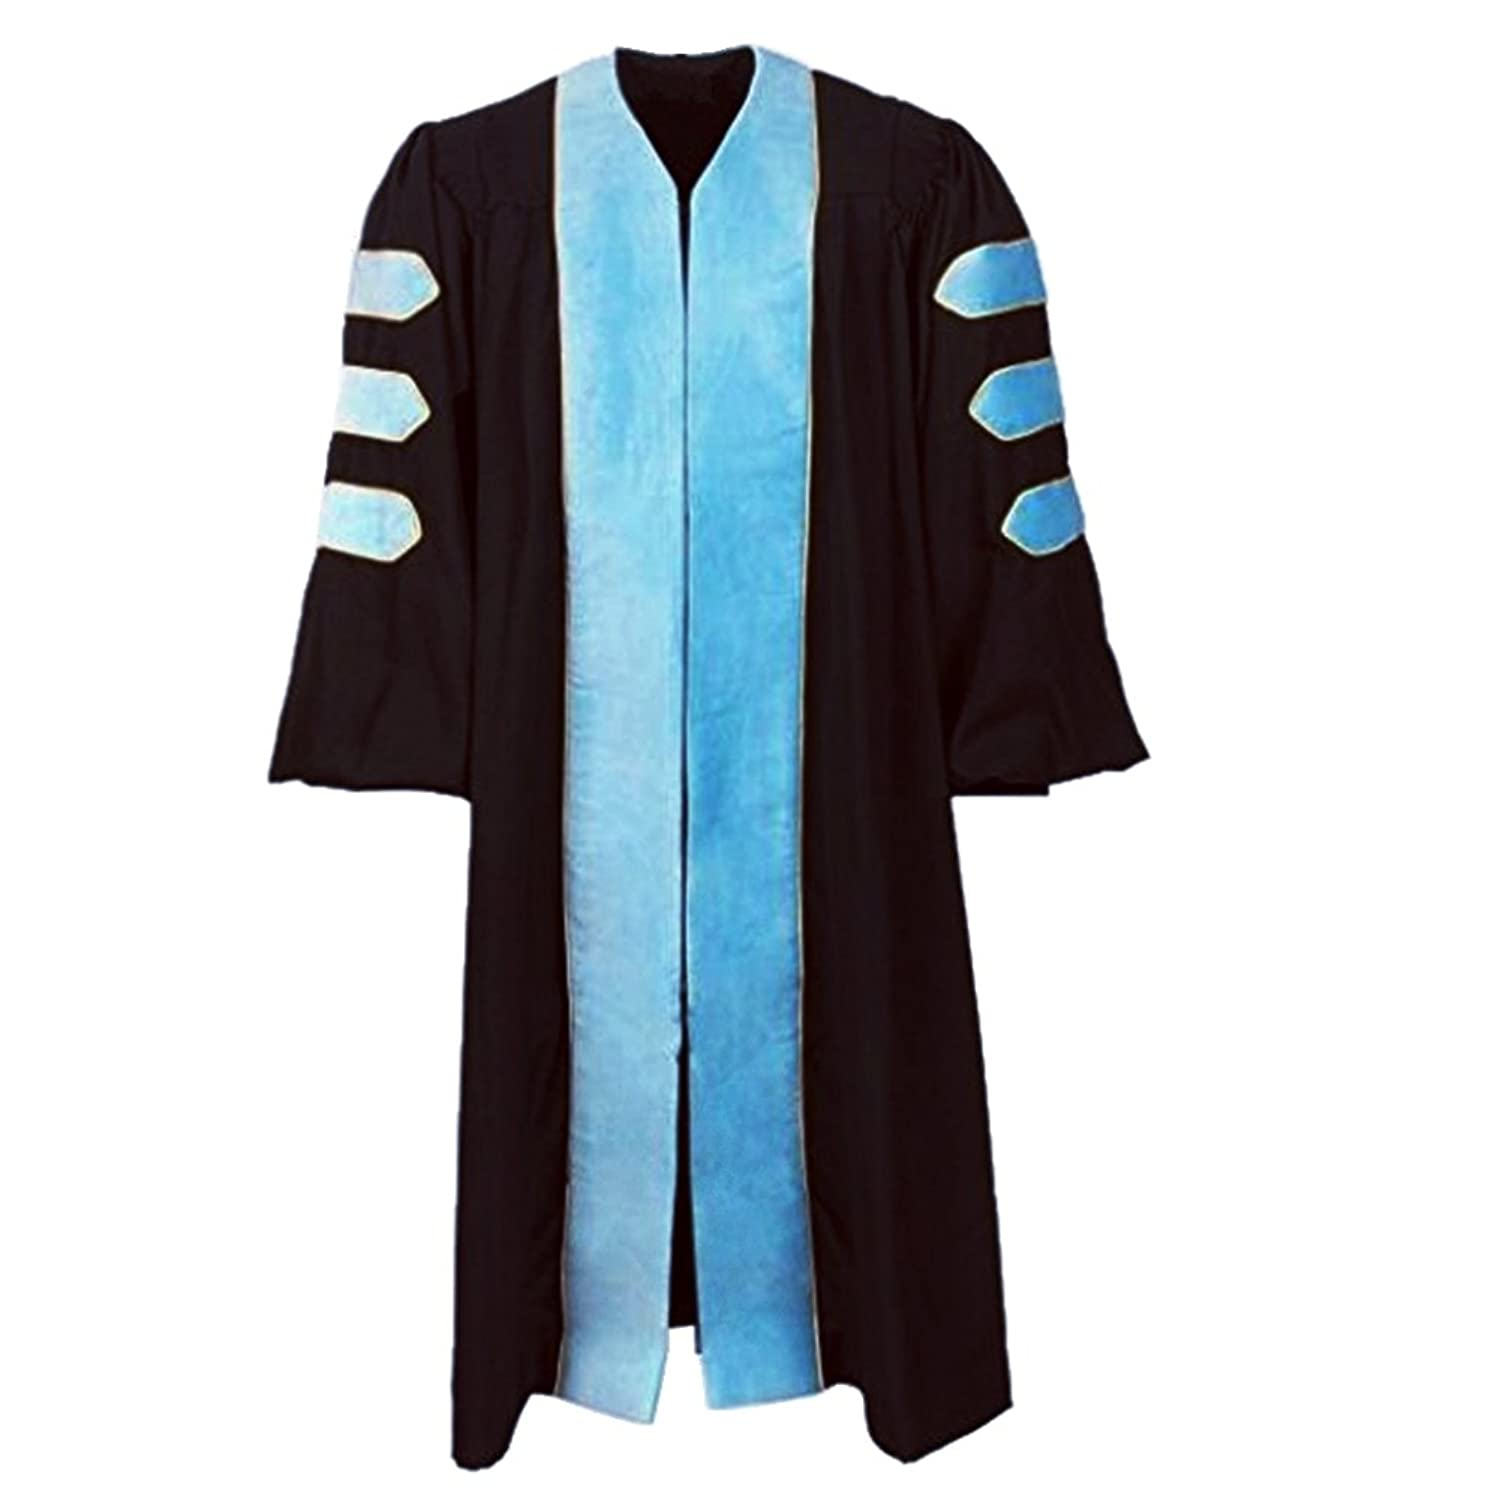 Contemporary Cap Gown Tassel Hood Ensign - Images for wedding gown ...